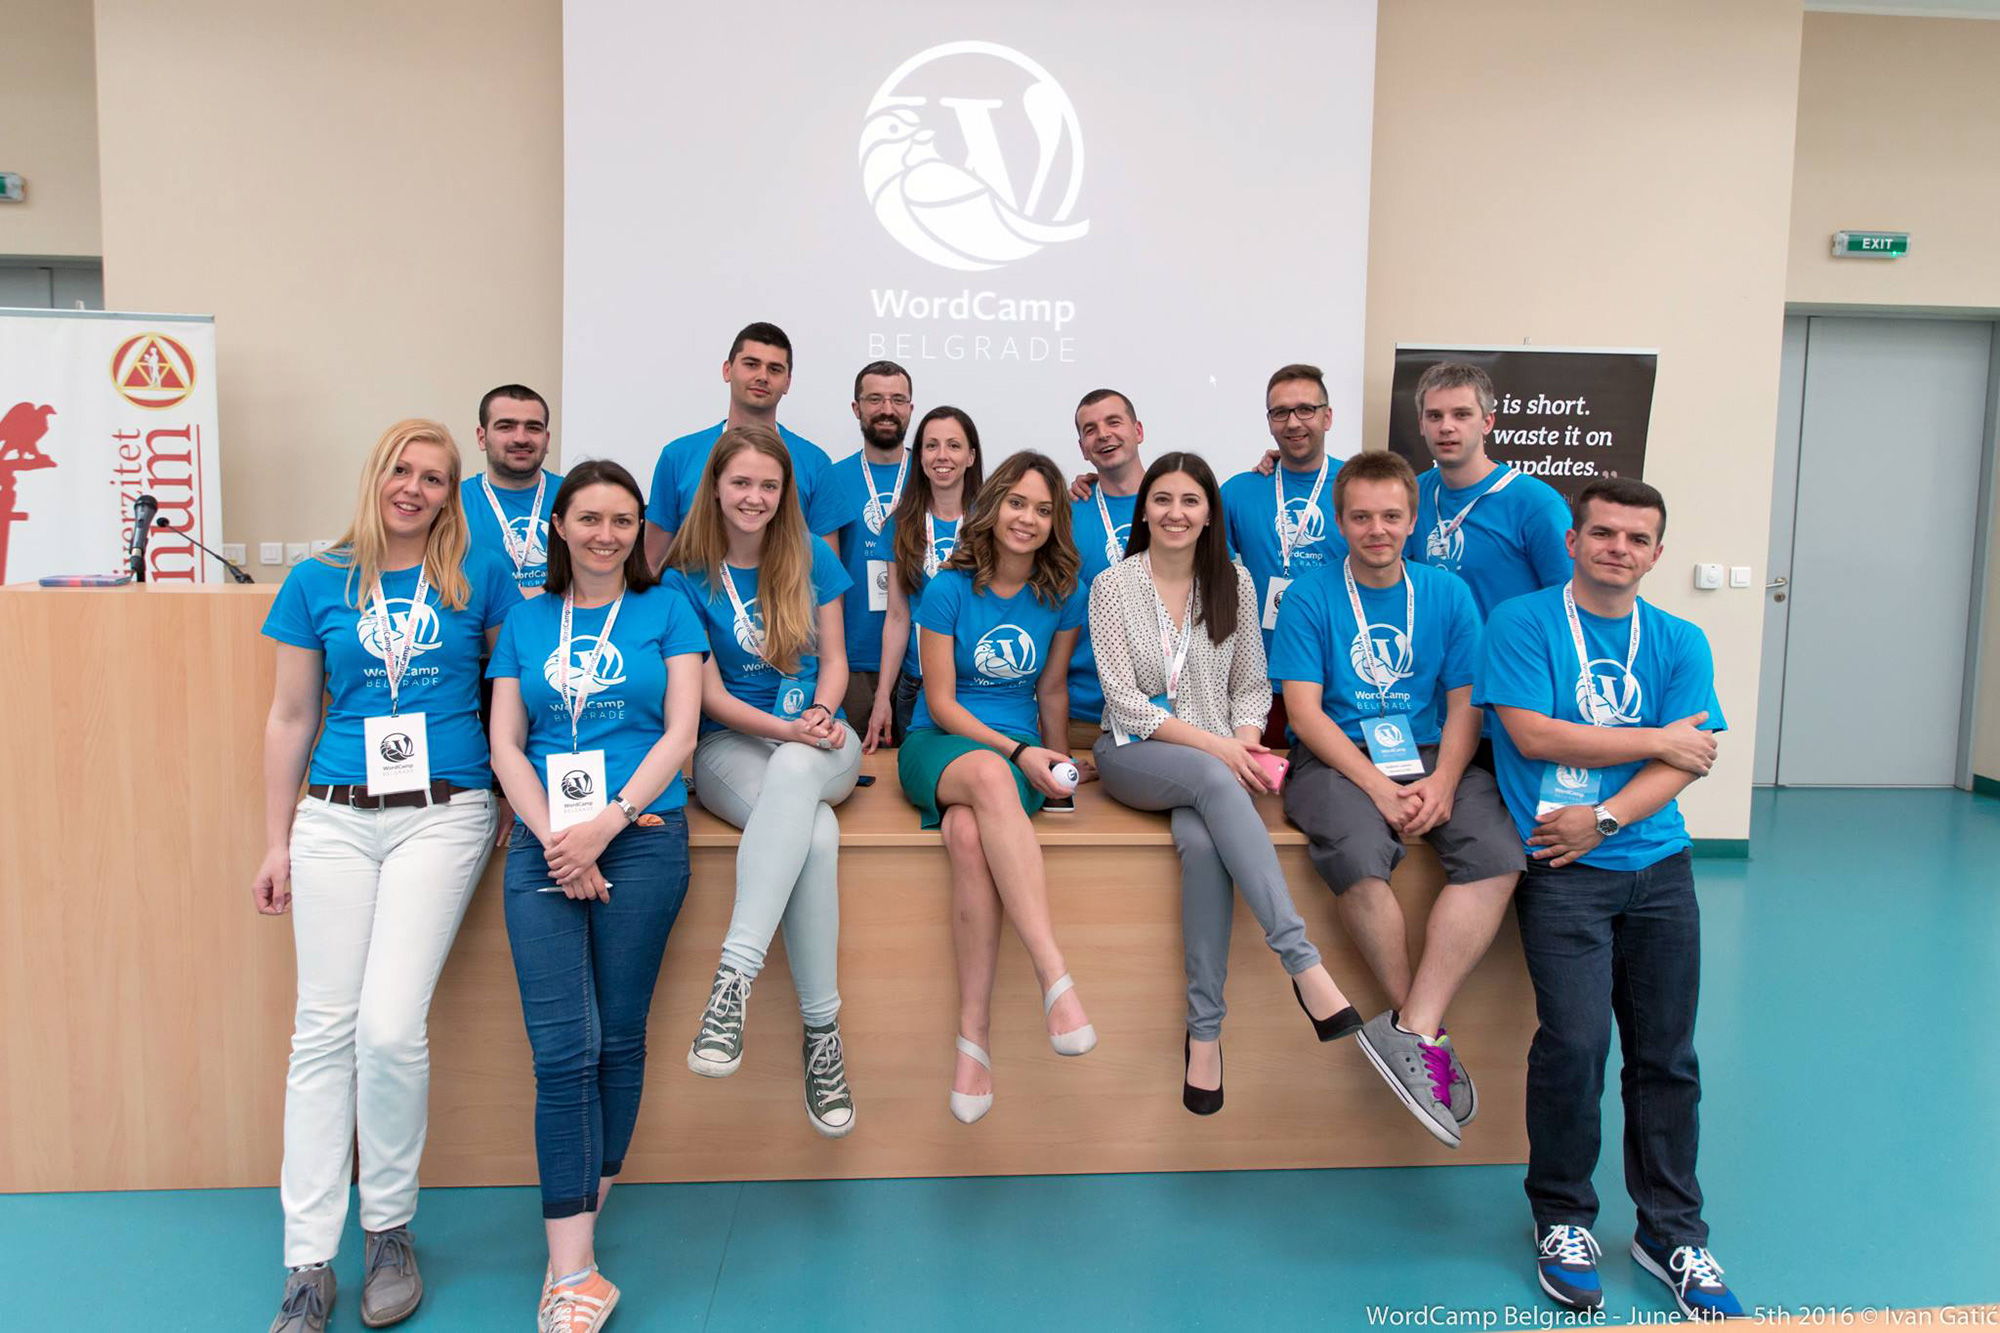 WordCamp Belgrade 2016 - © Ivan Gatic